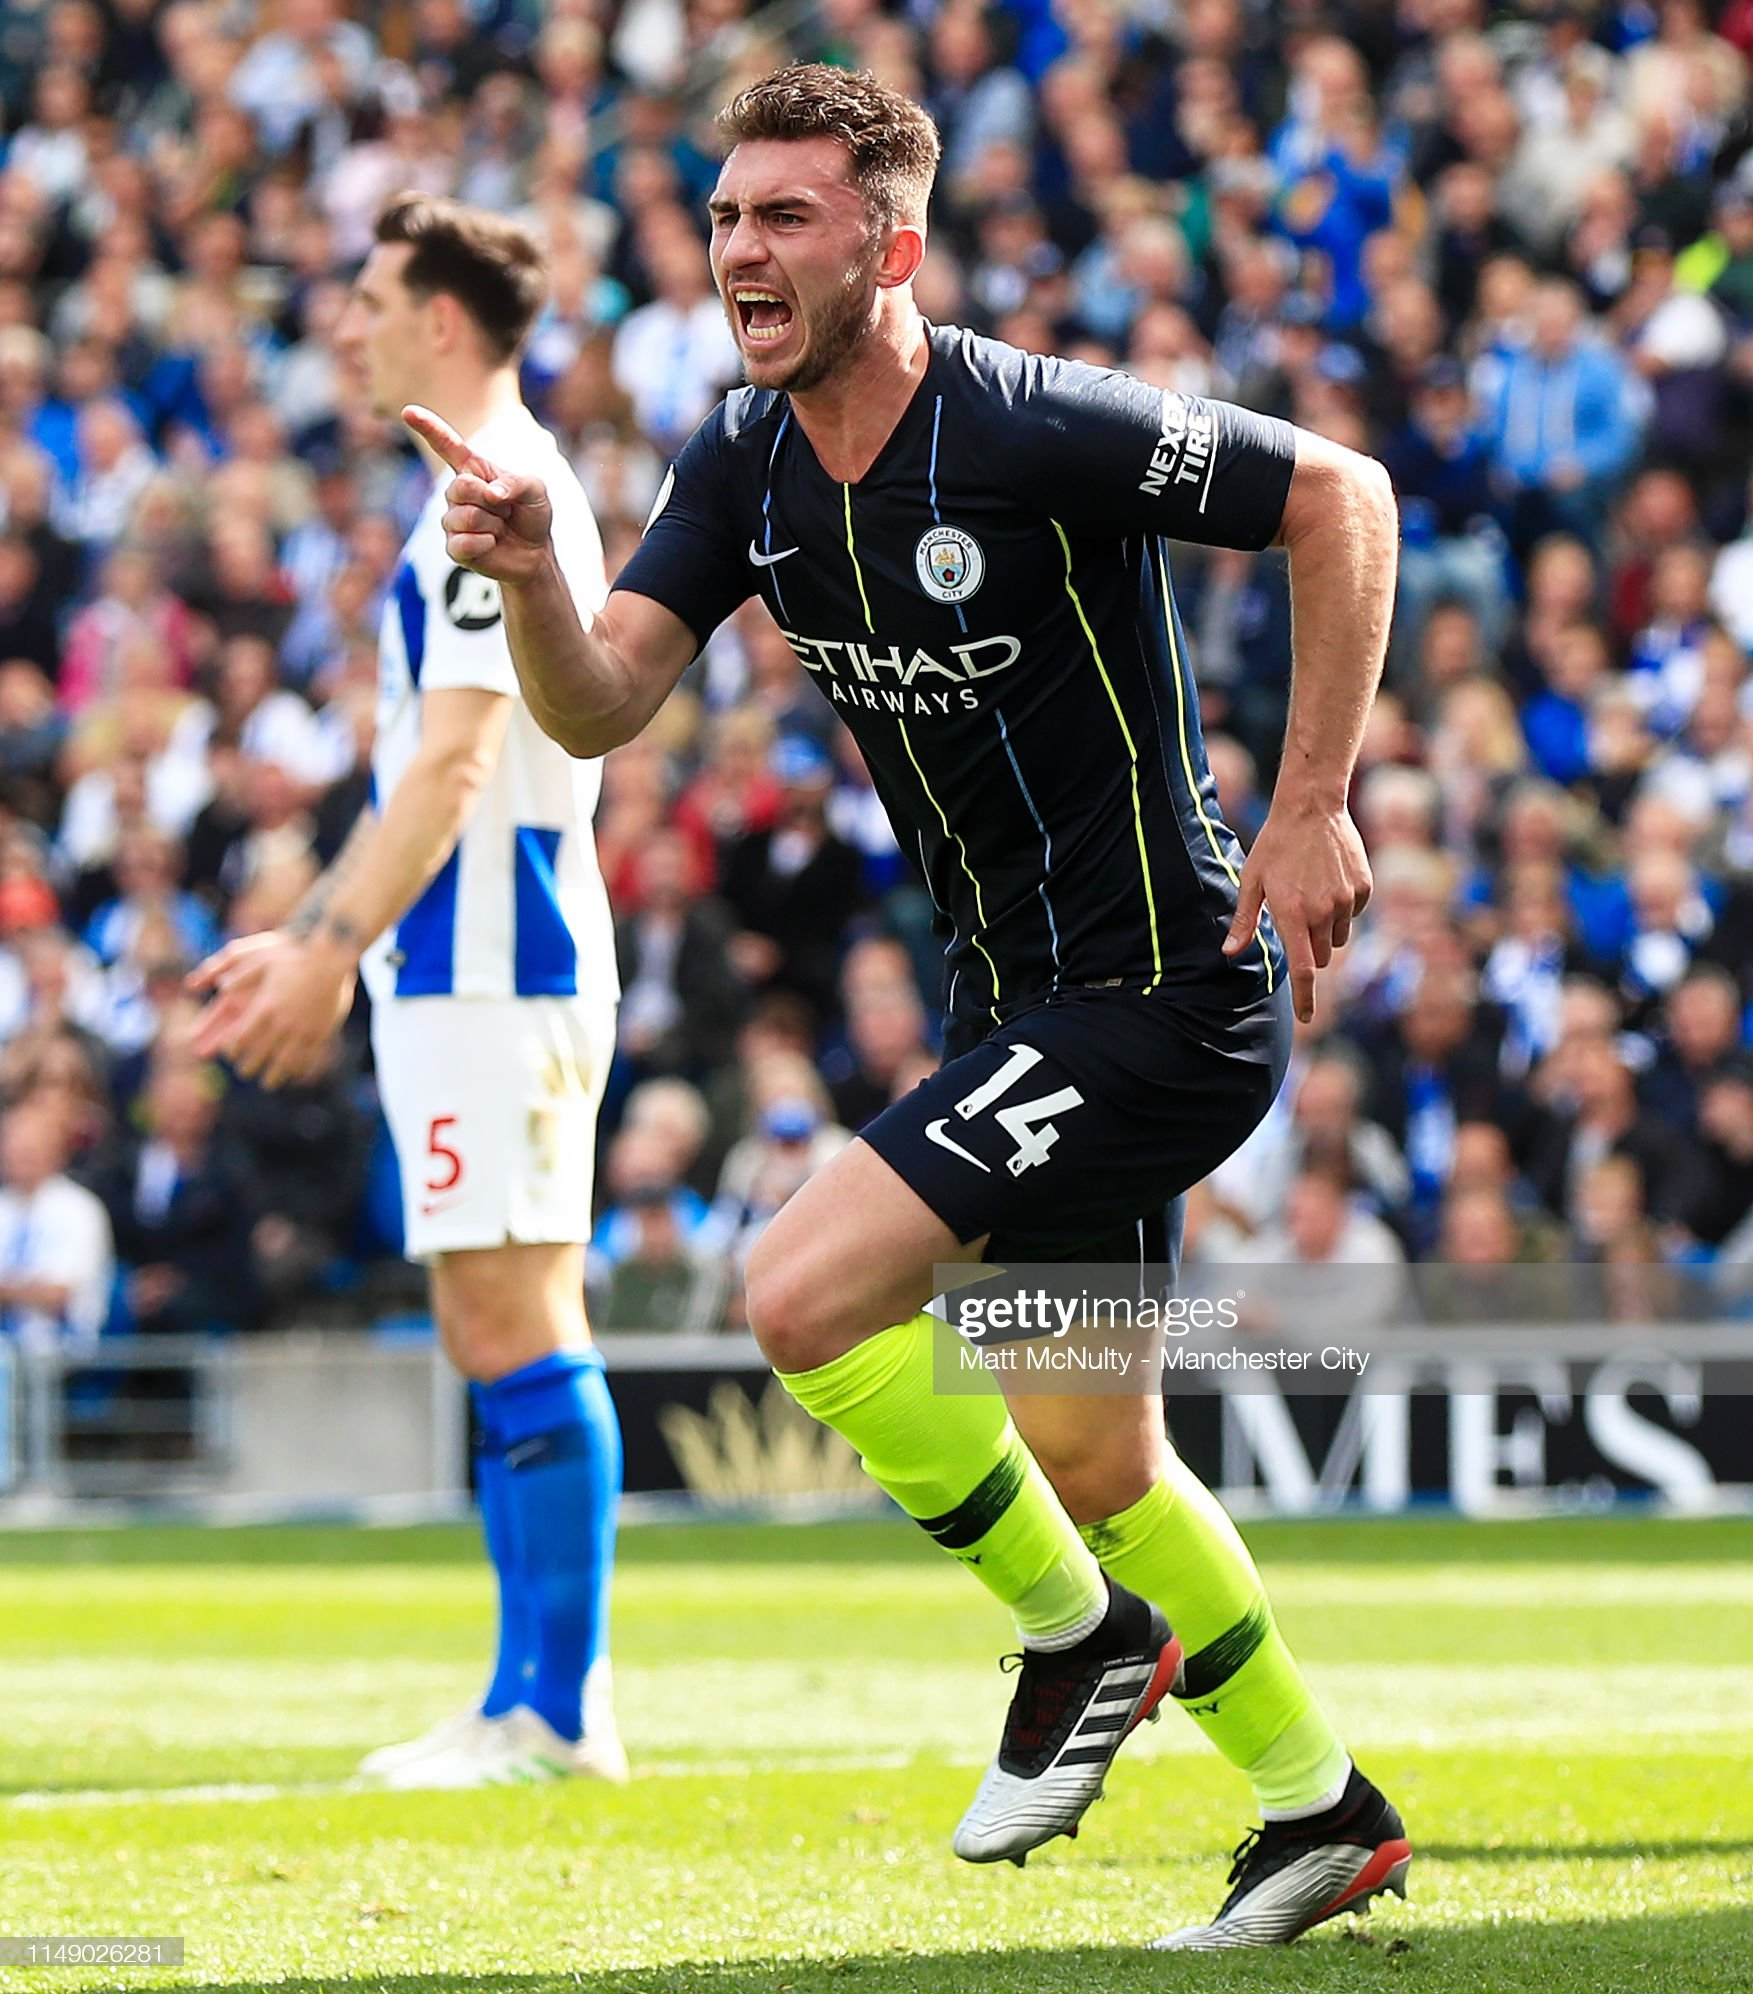 https://media.gettyimages.com/photos/aymeric-laporte-of-manchester-city-celebrates-after-scoring-his-teams-picture-id1149026281?s=2048x2048